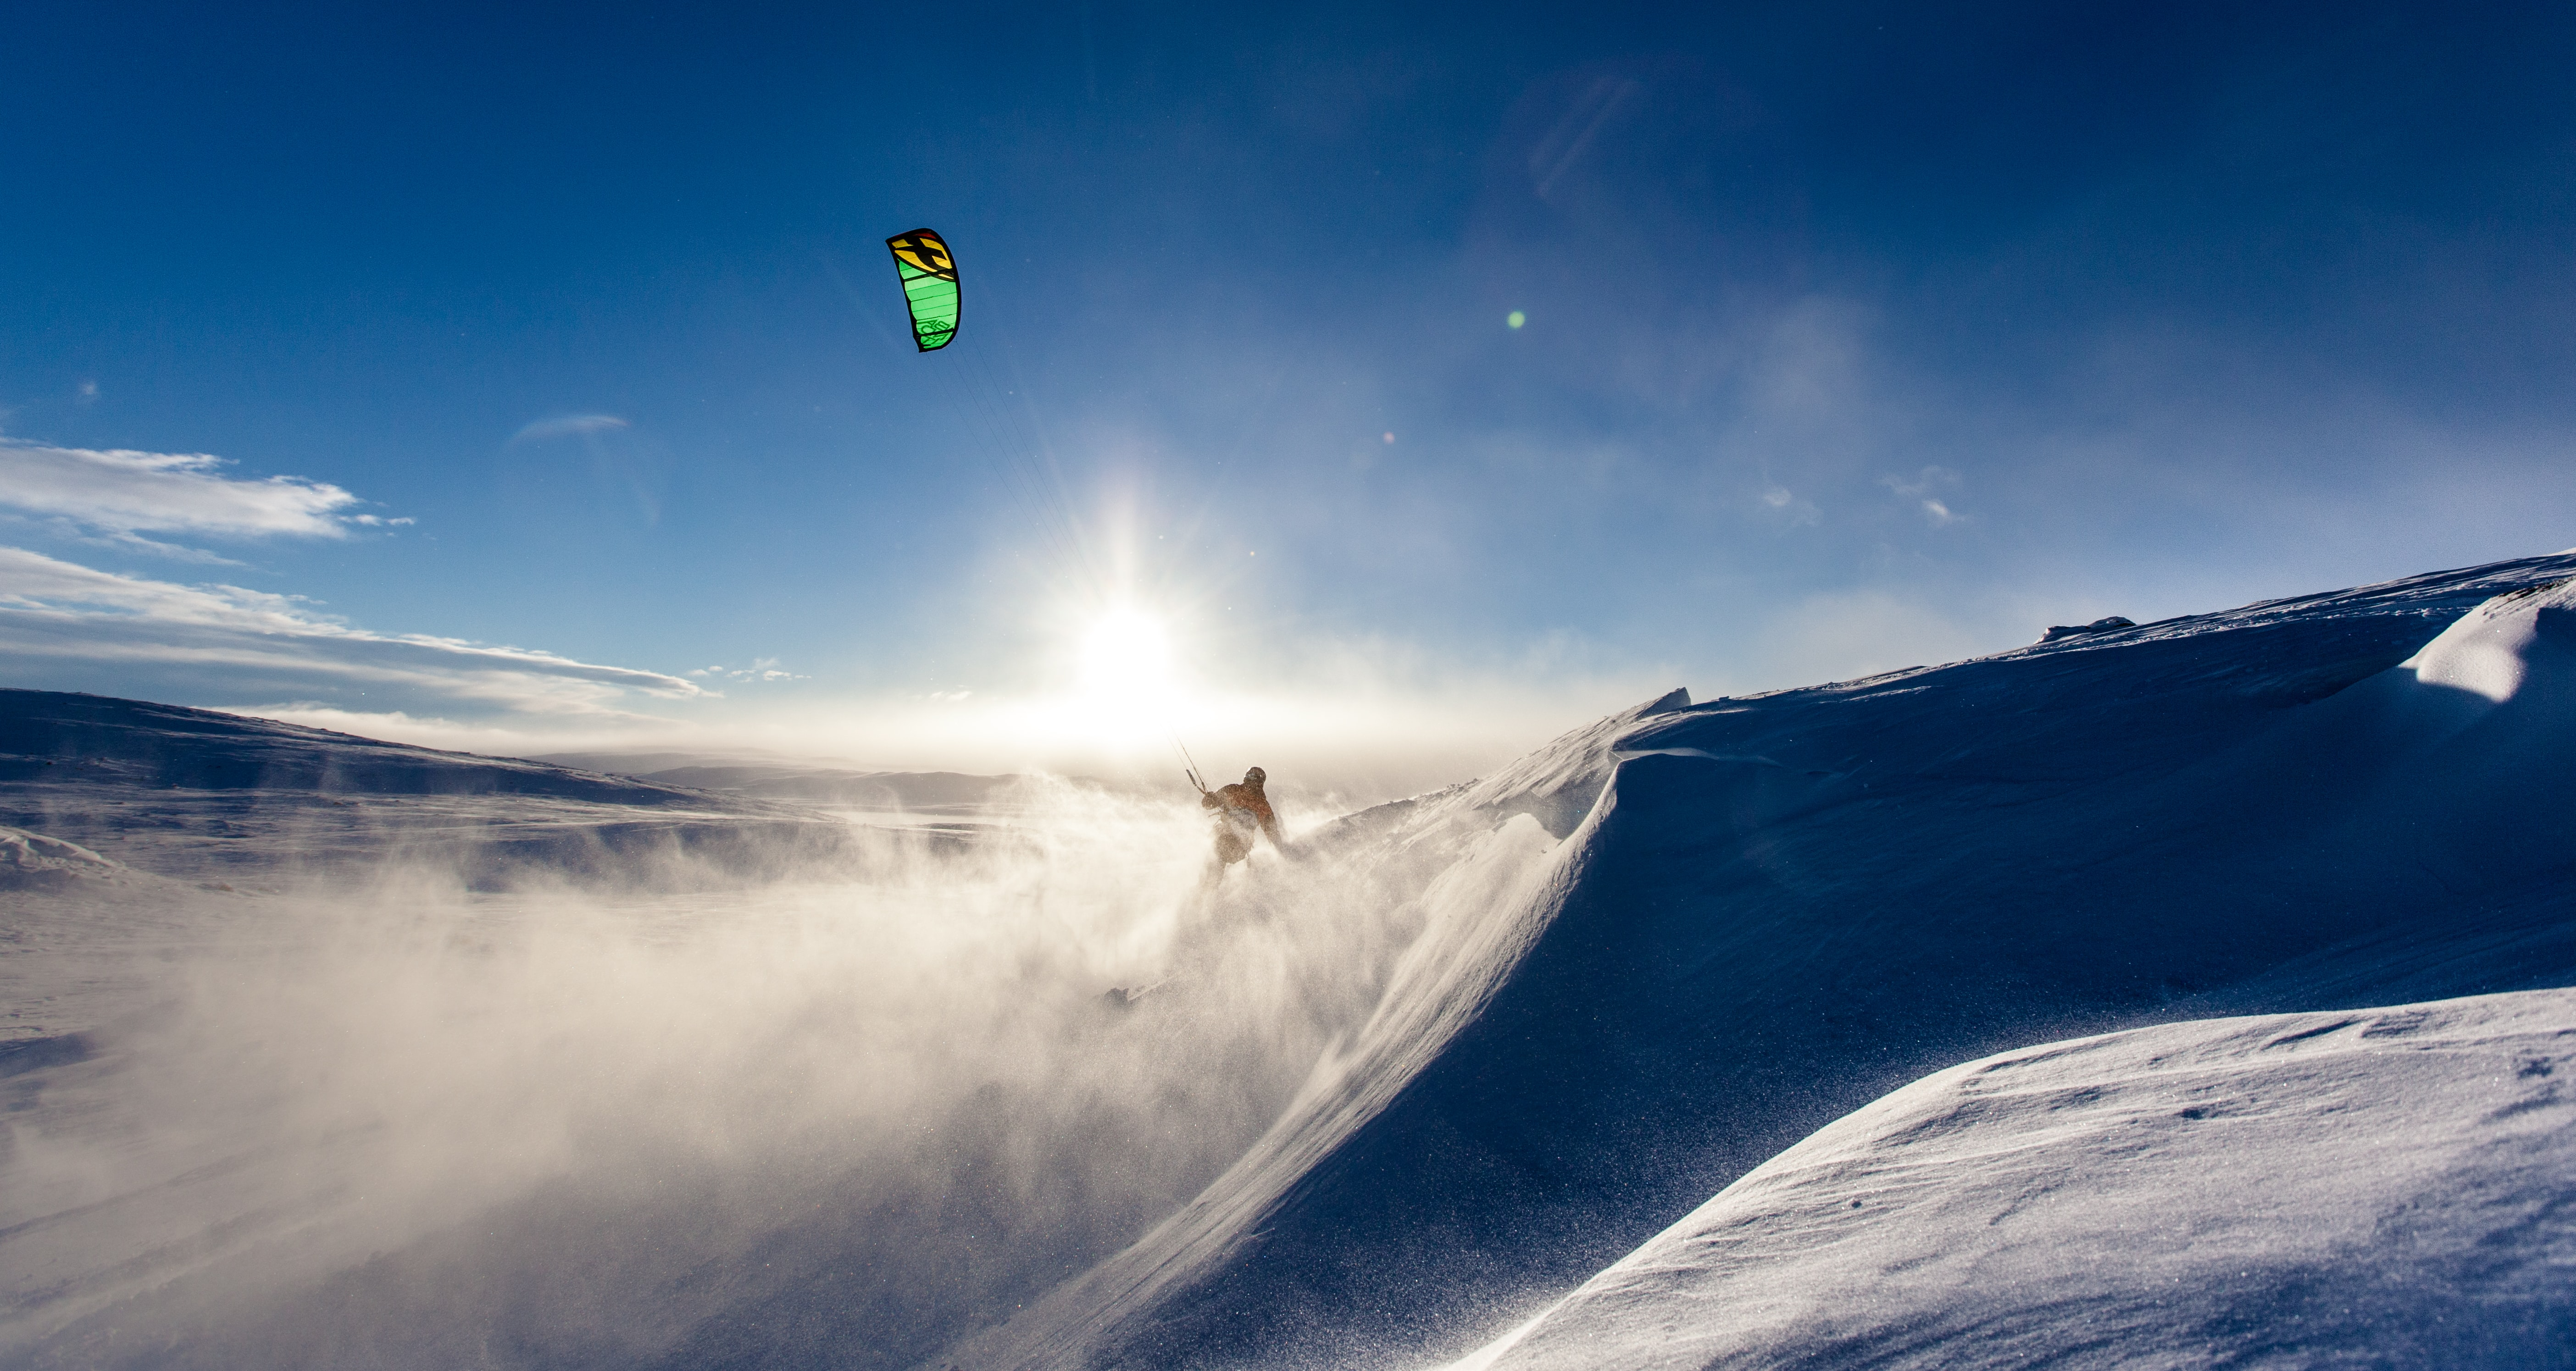 A silhouette of kiteboarder kicking up snow on a mountain